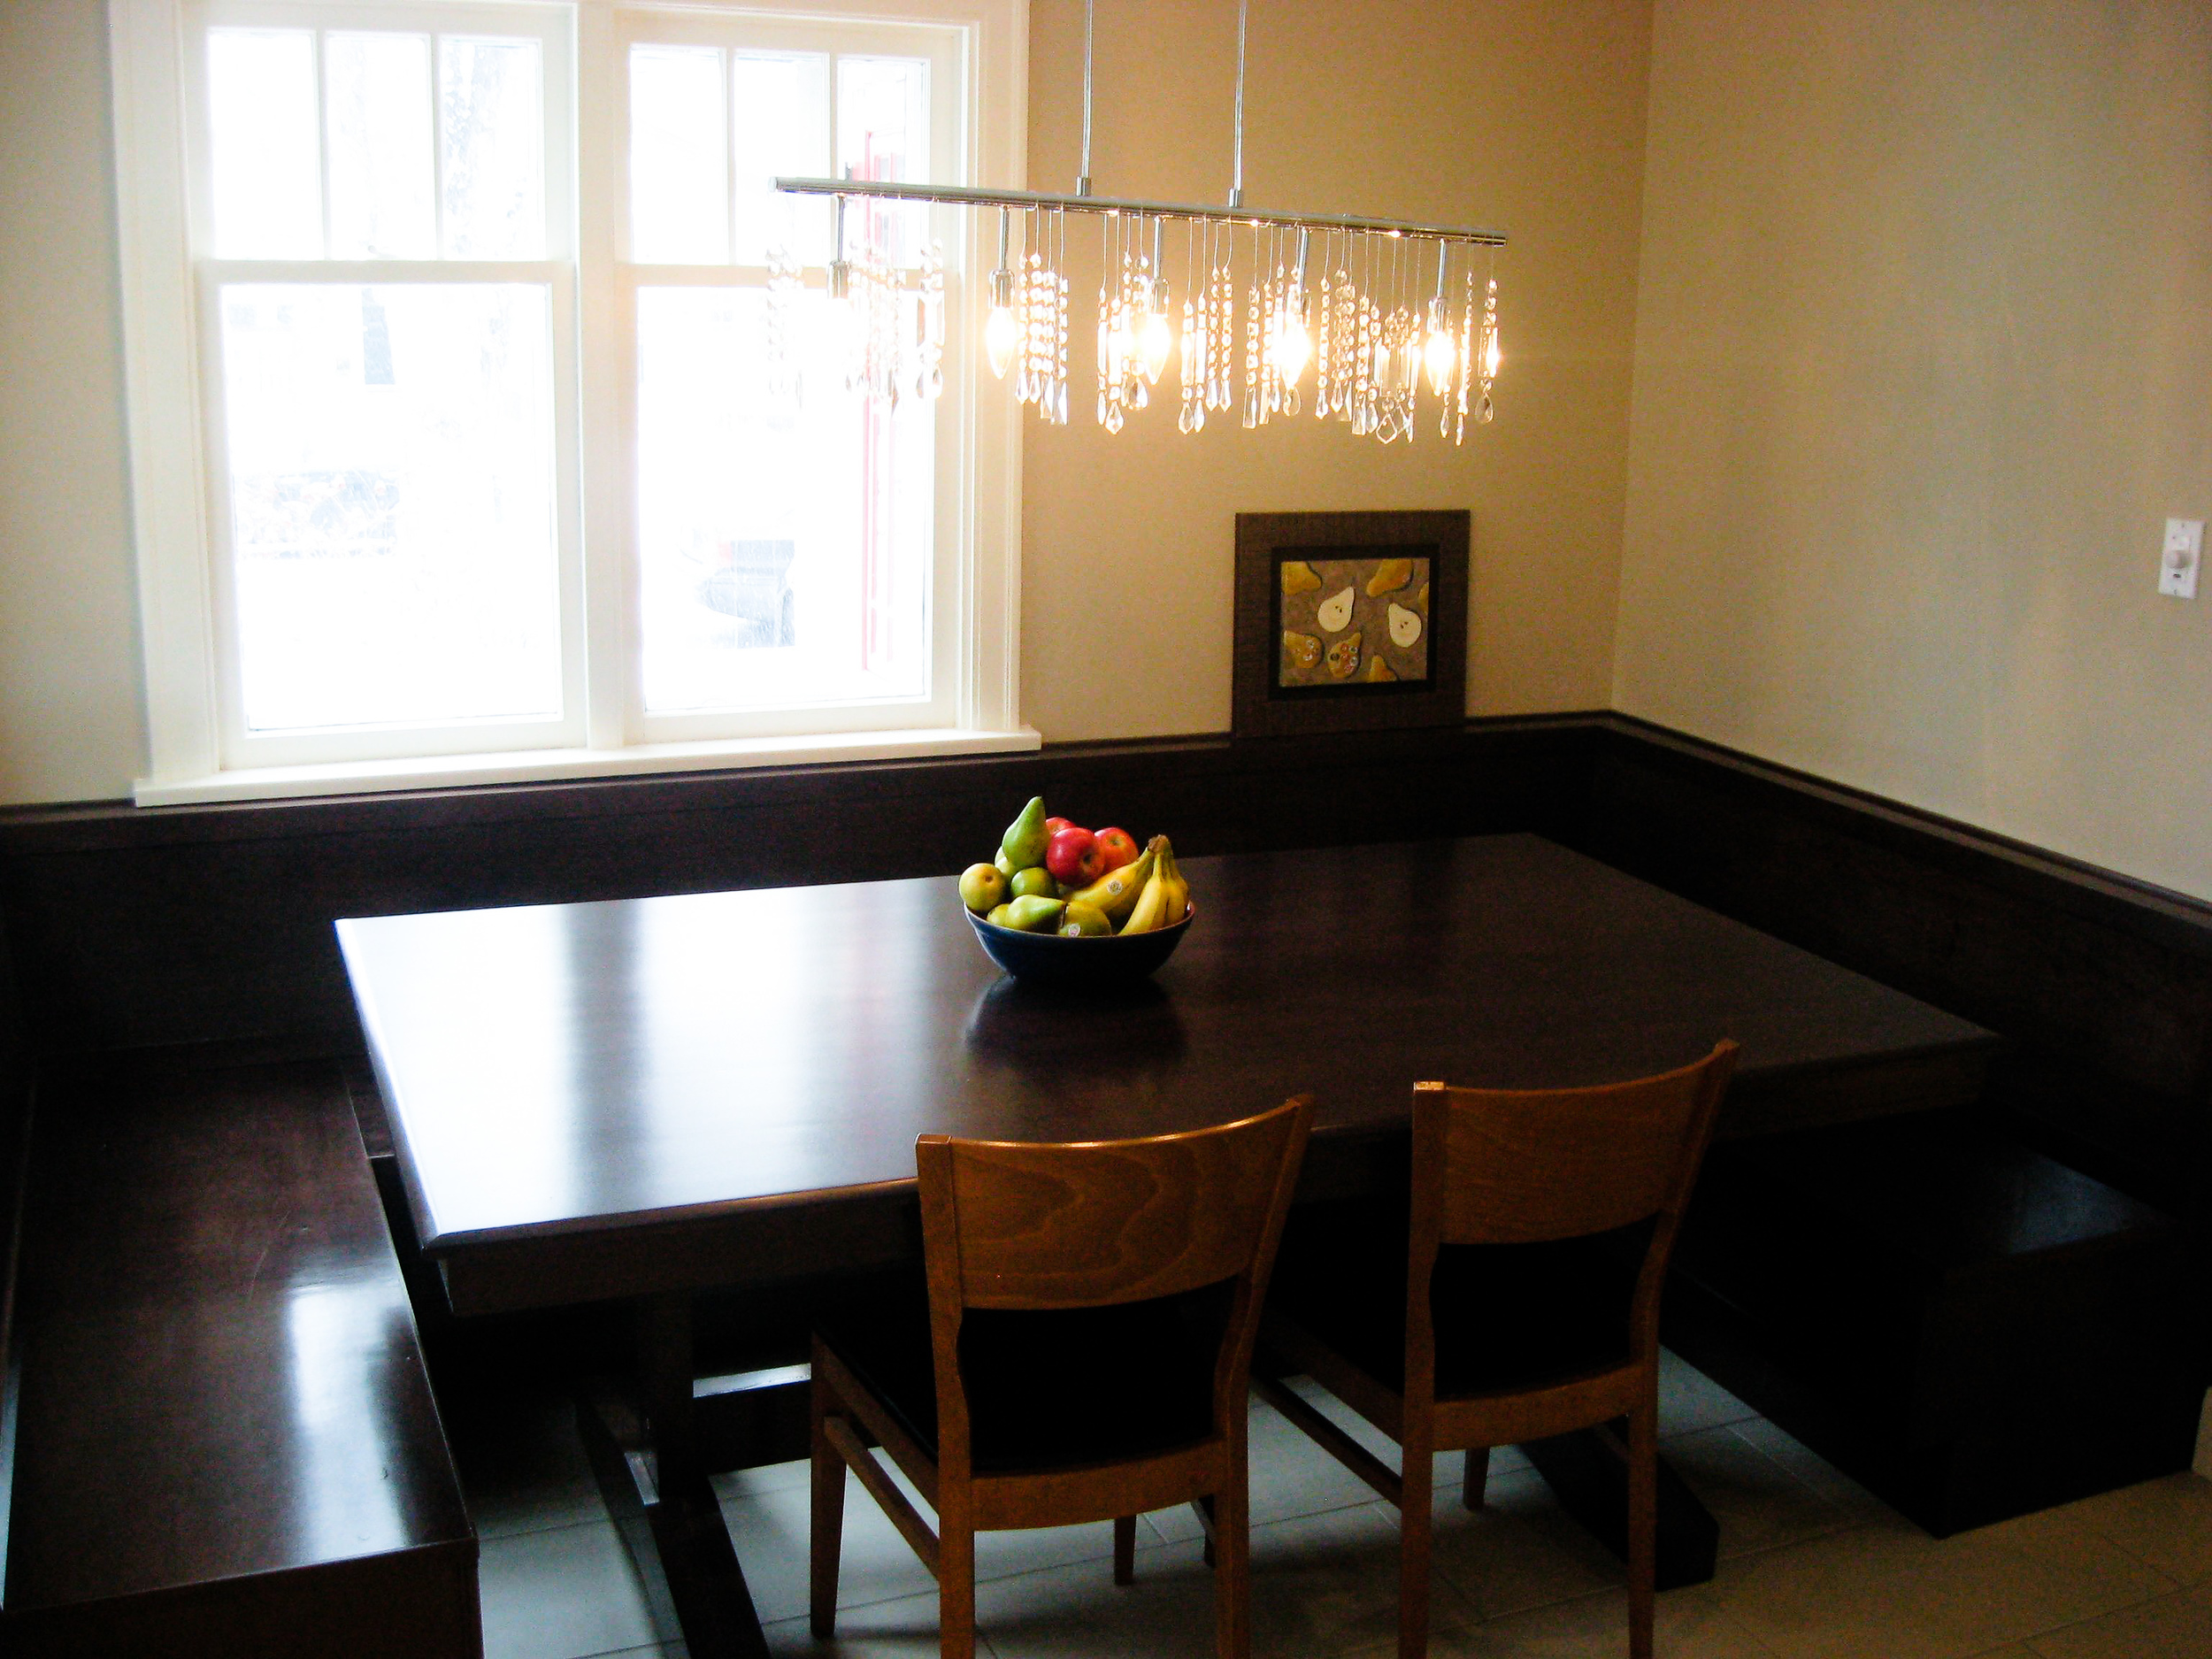 kitchen and full home remodel, renovatons Calgary, general contractor.jpg